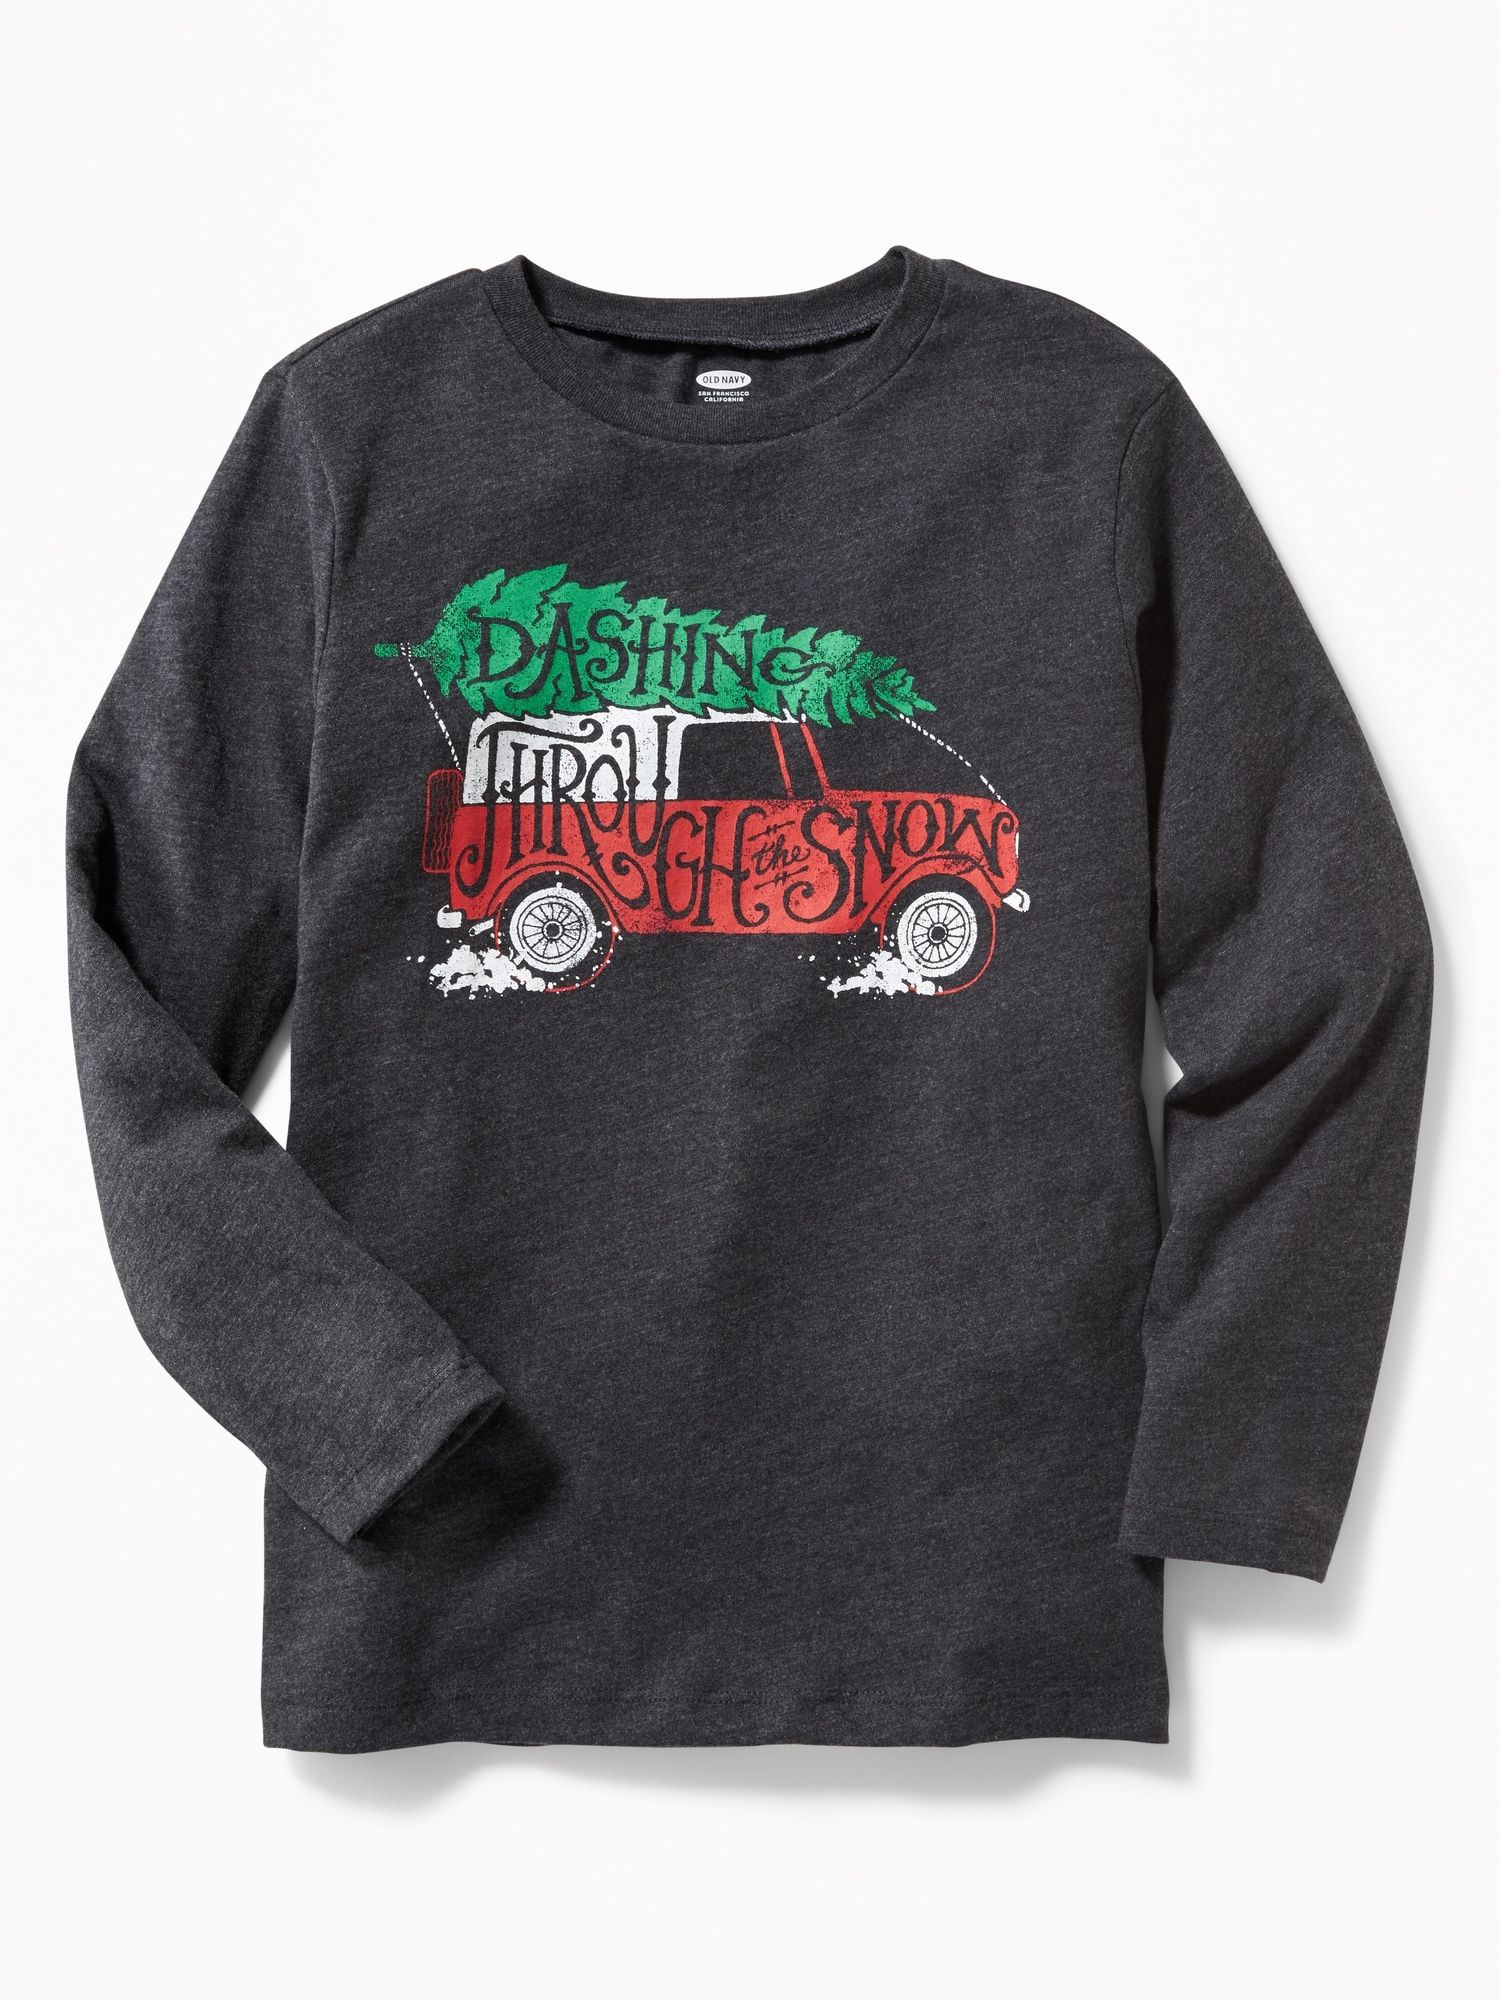 Christmas Graphic Tee for Boys | Old Navy | winter | Pinterest ...